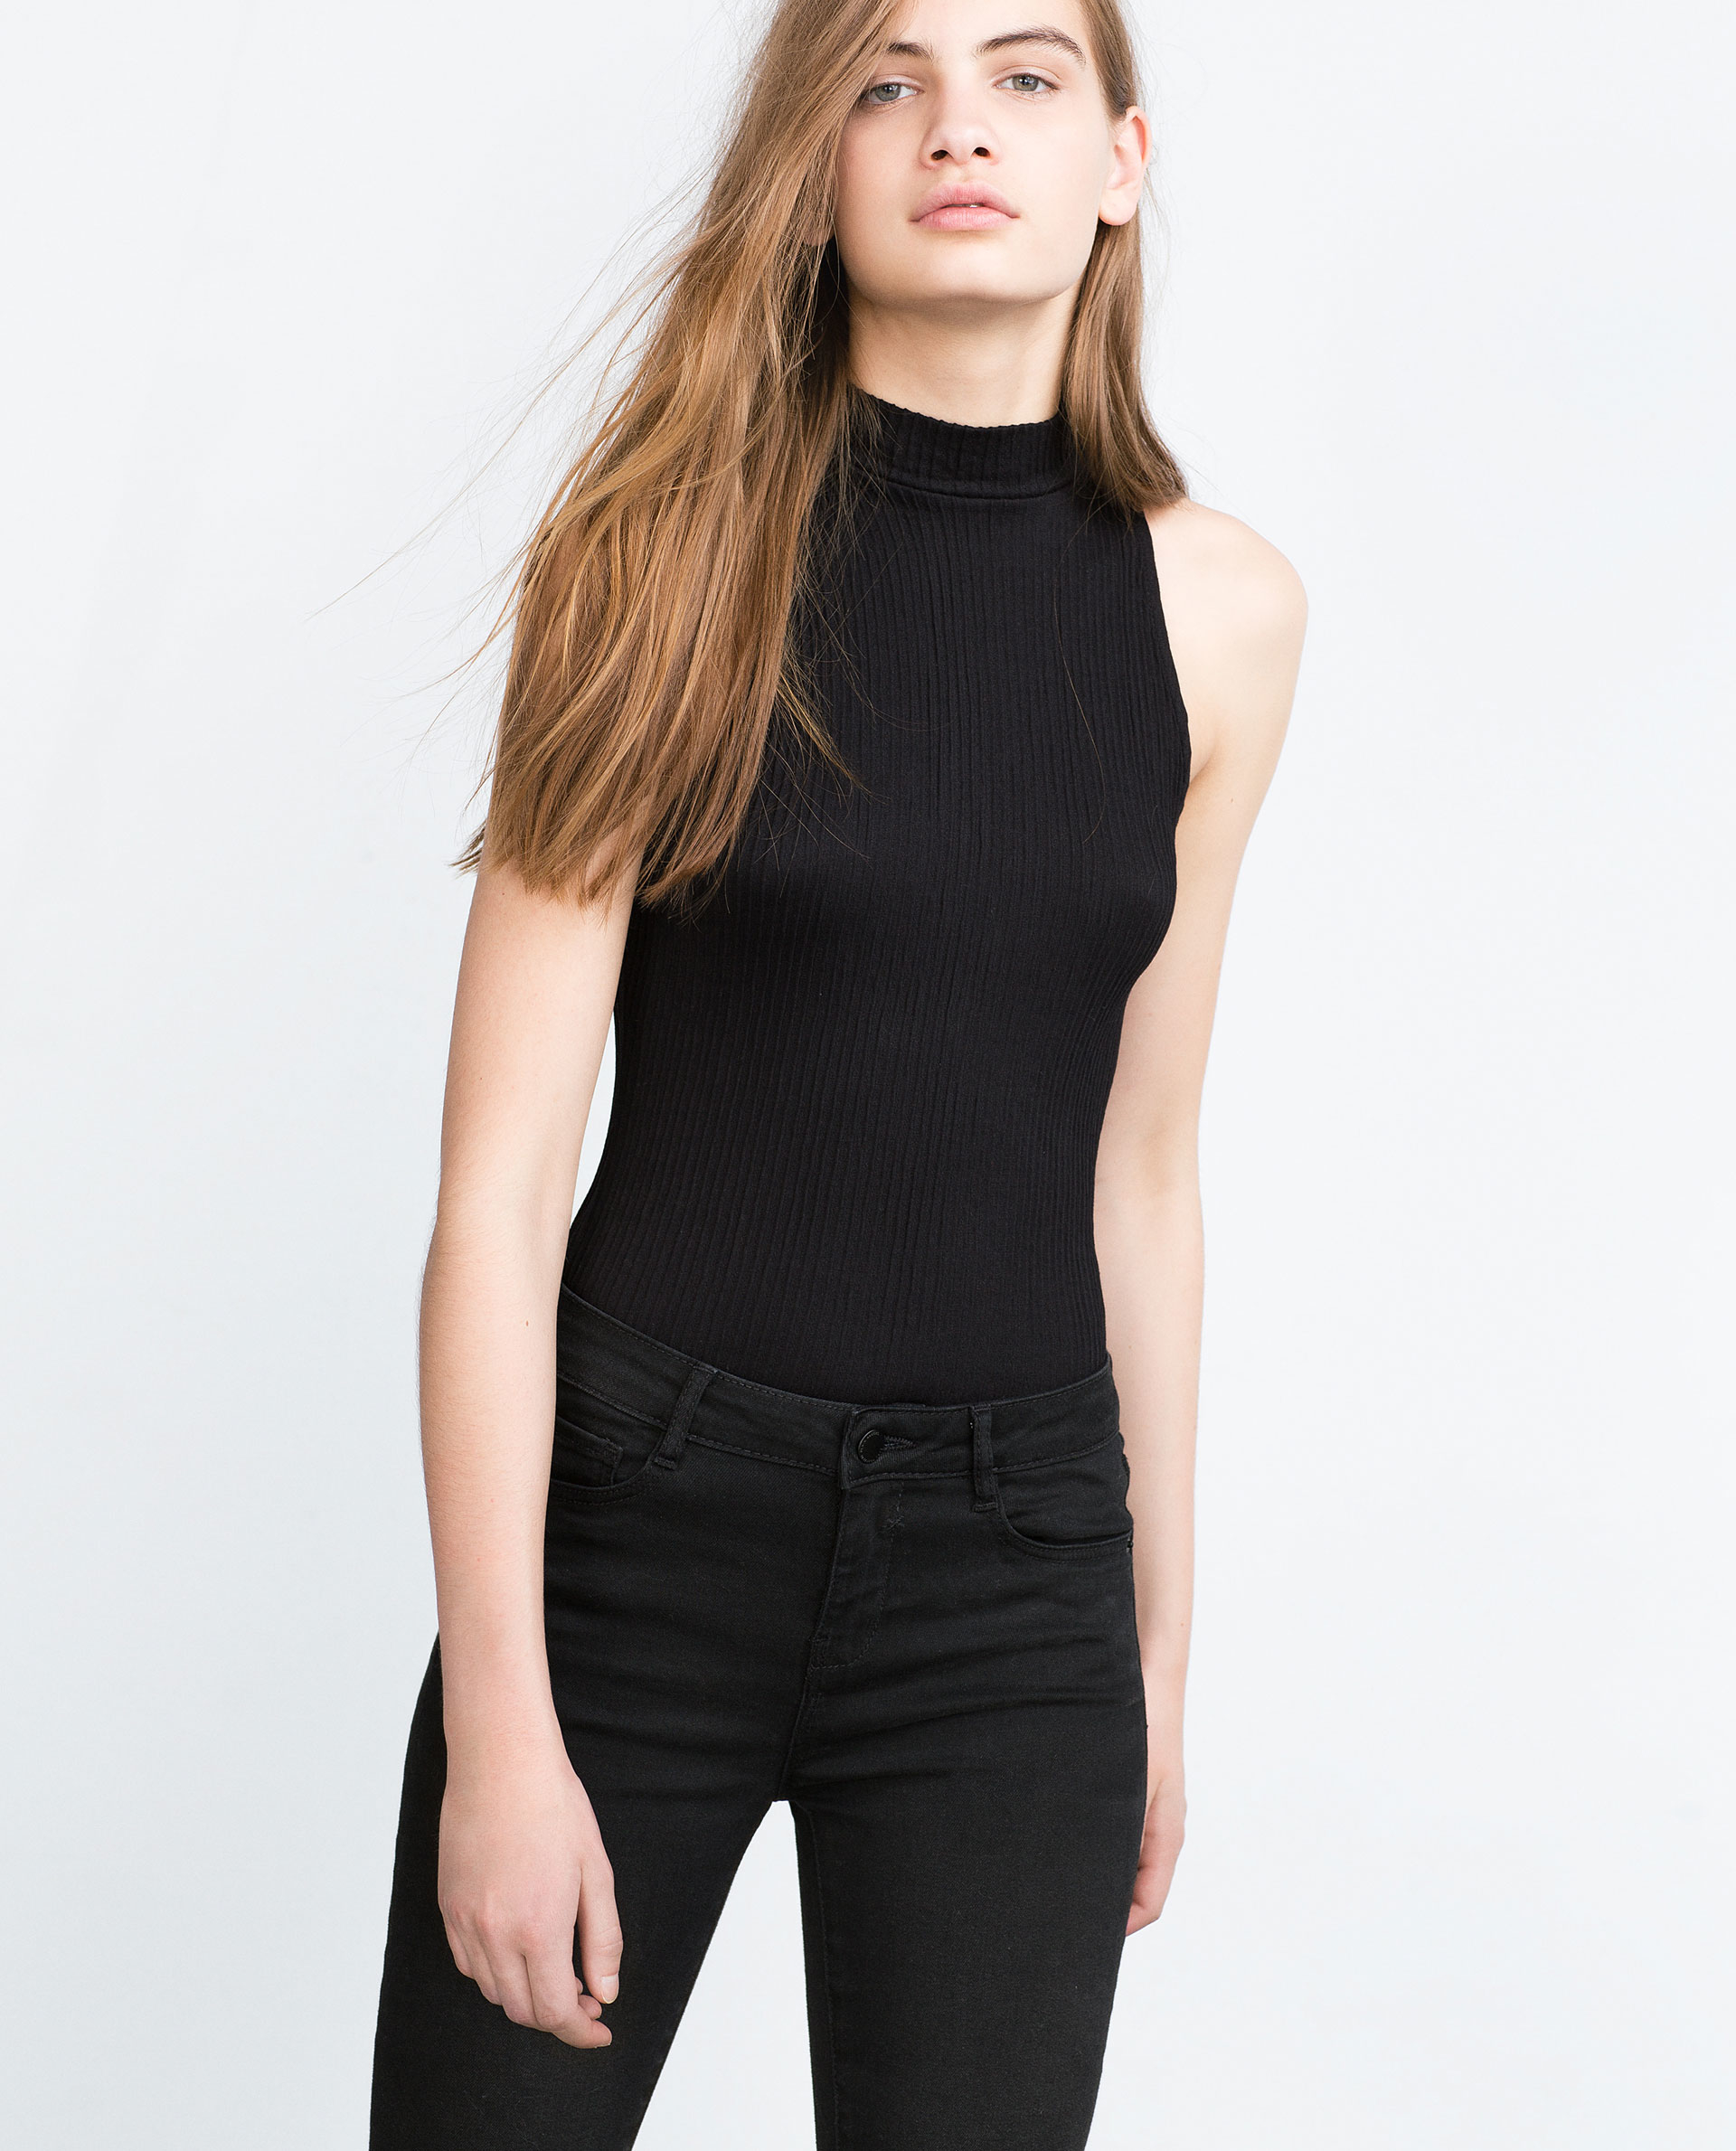 Zara High Neck Bodysuit in Black